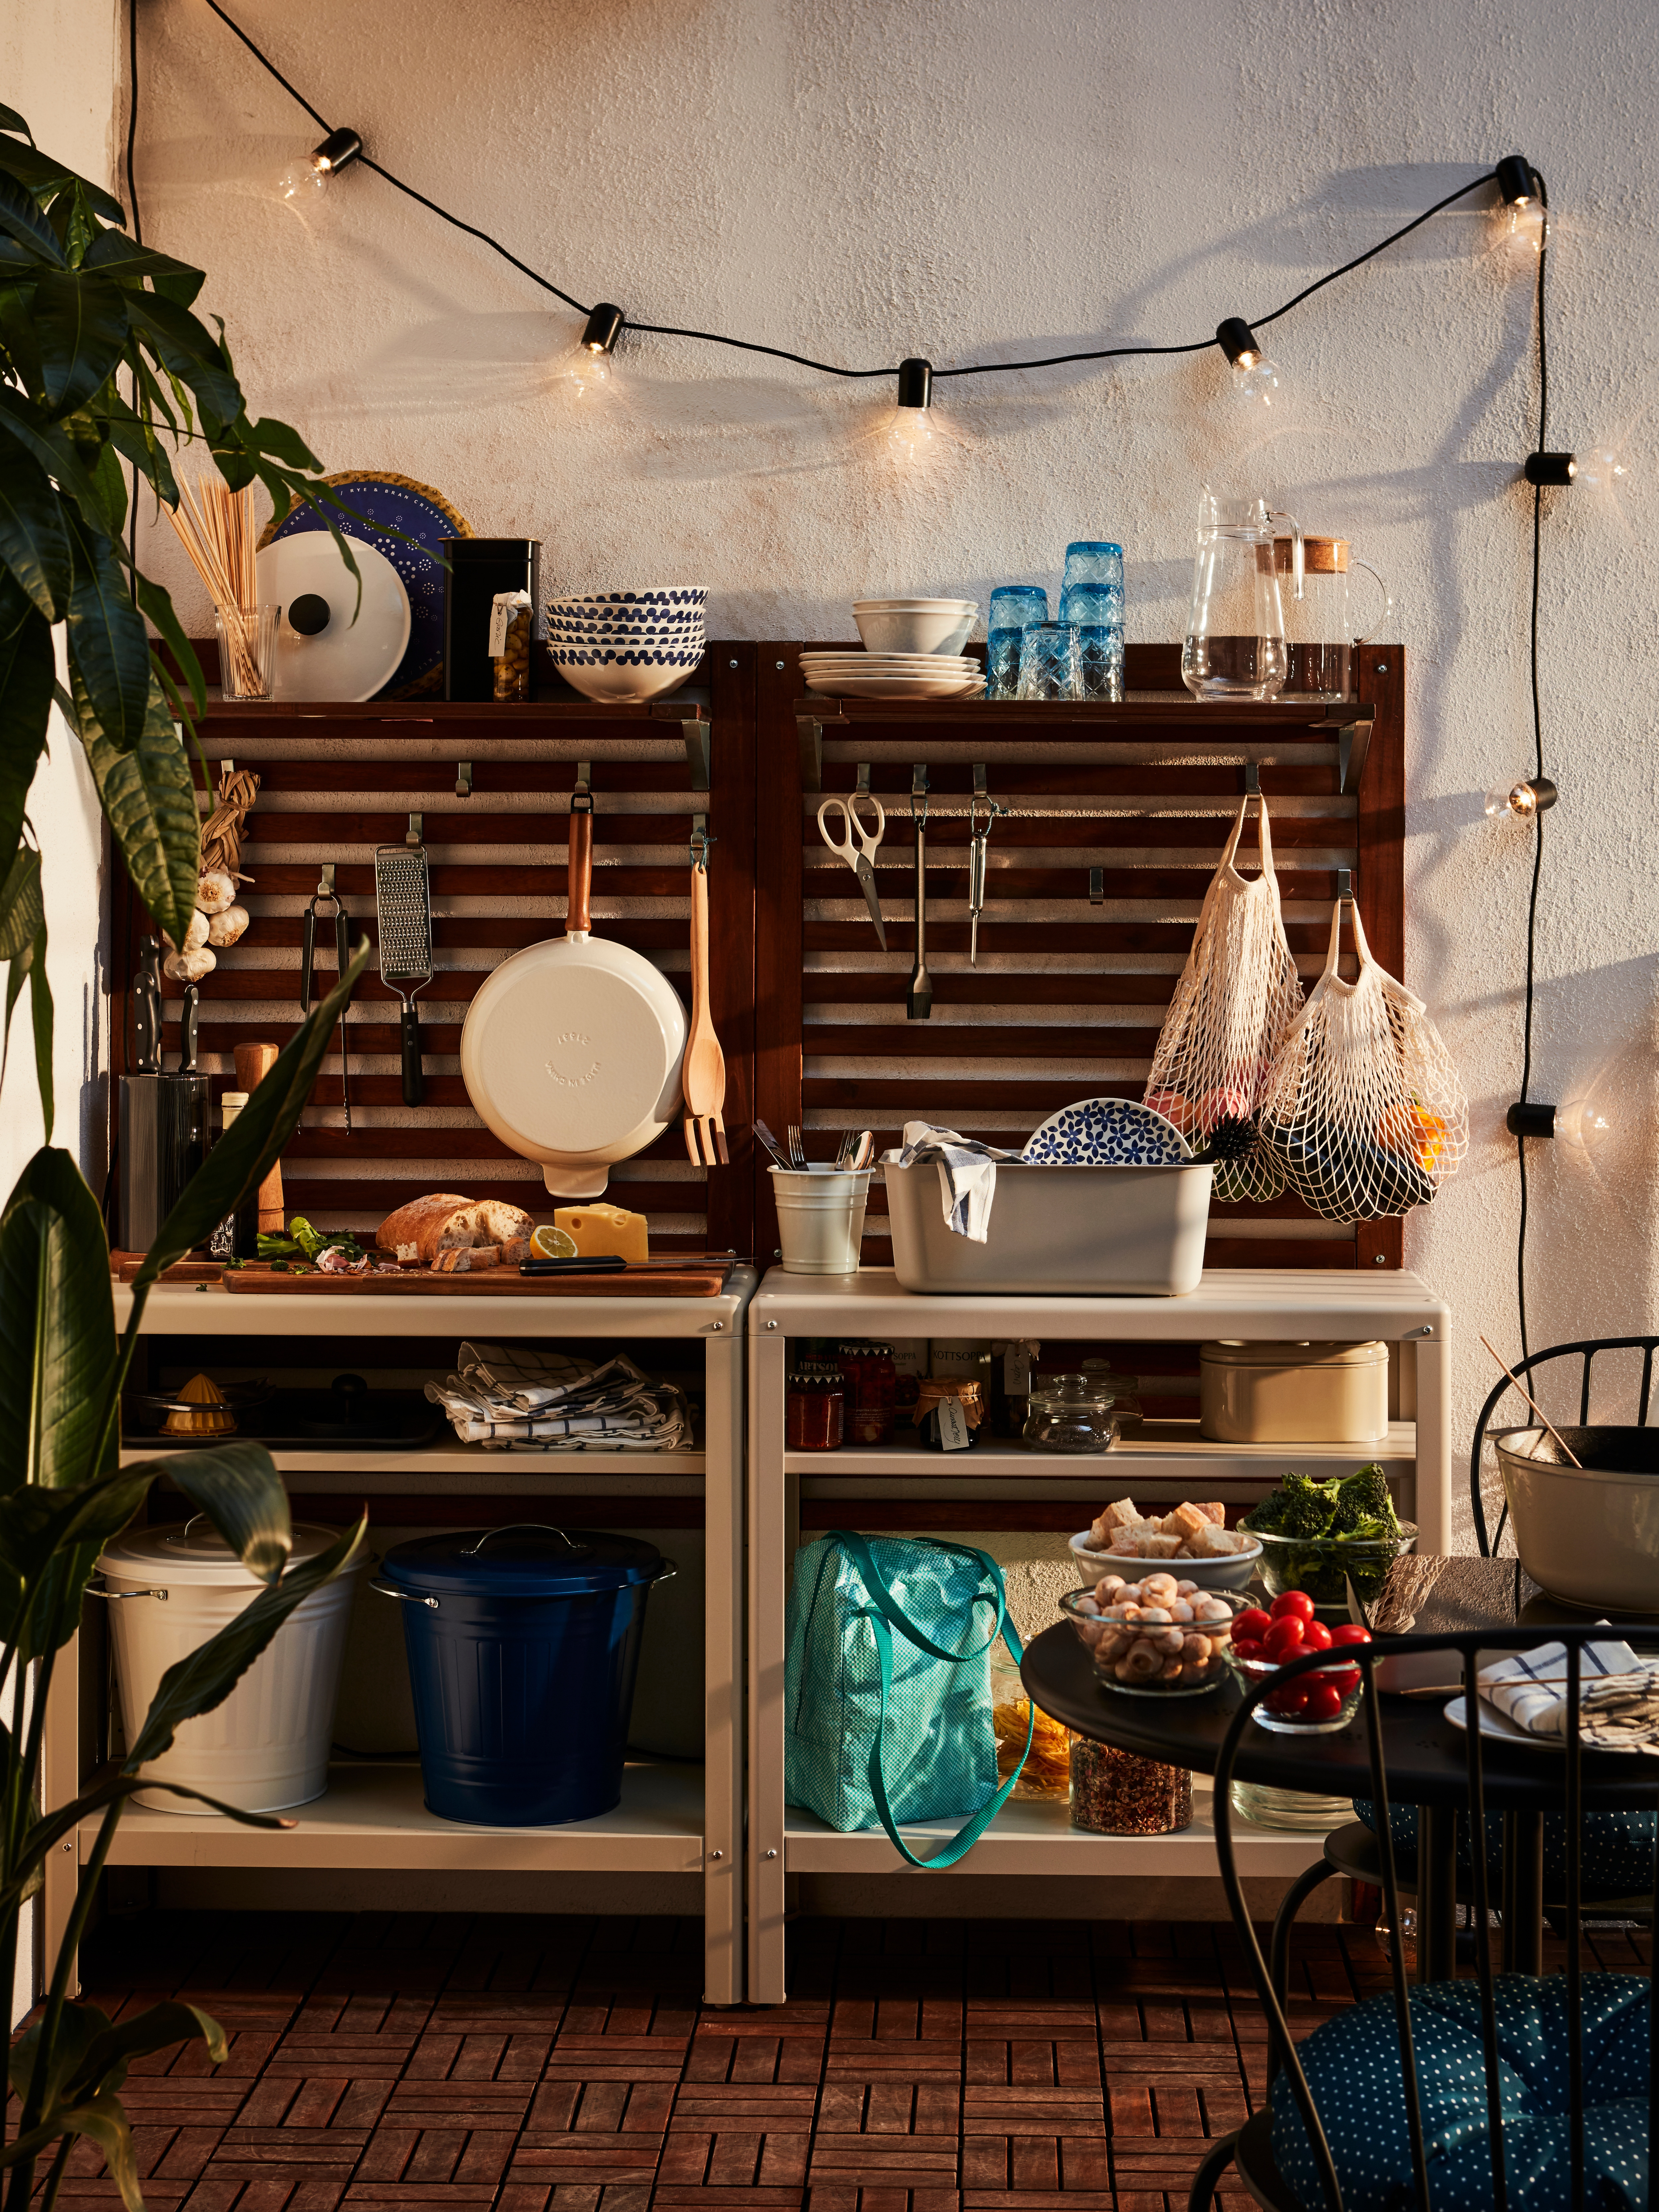 KOLBJÖRN indoor/outdoor shelving unit on a patio with outdoor gardening and dining items on its steel shelves and worktop.